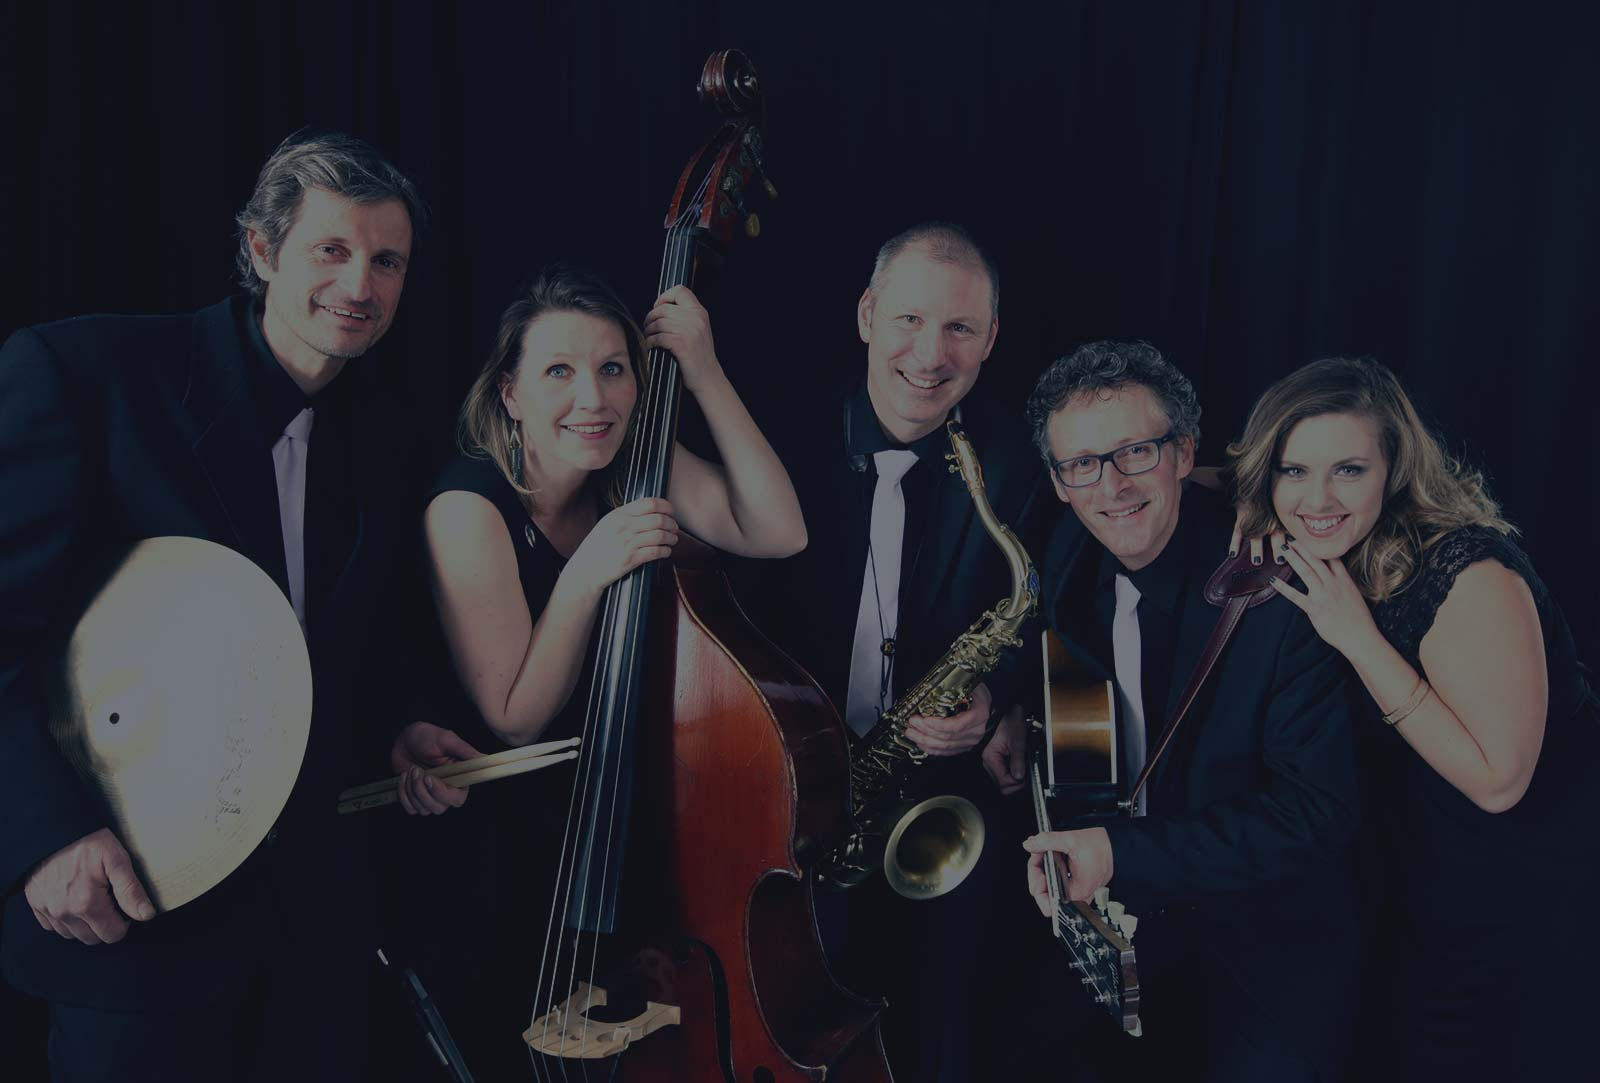 groupe jazz band animation mariage lyon grenoble annecy rhone alpes